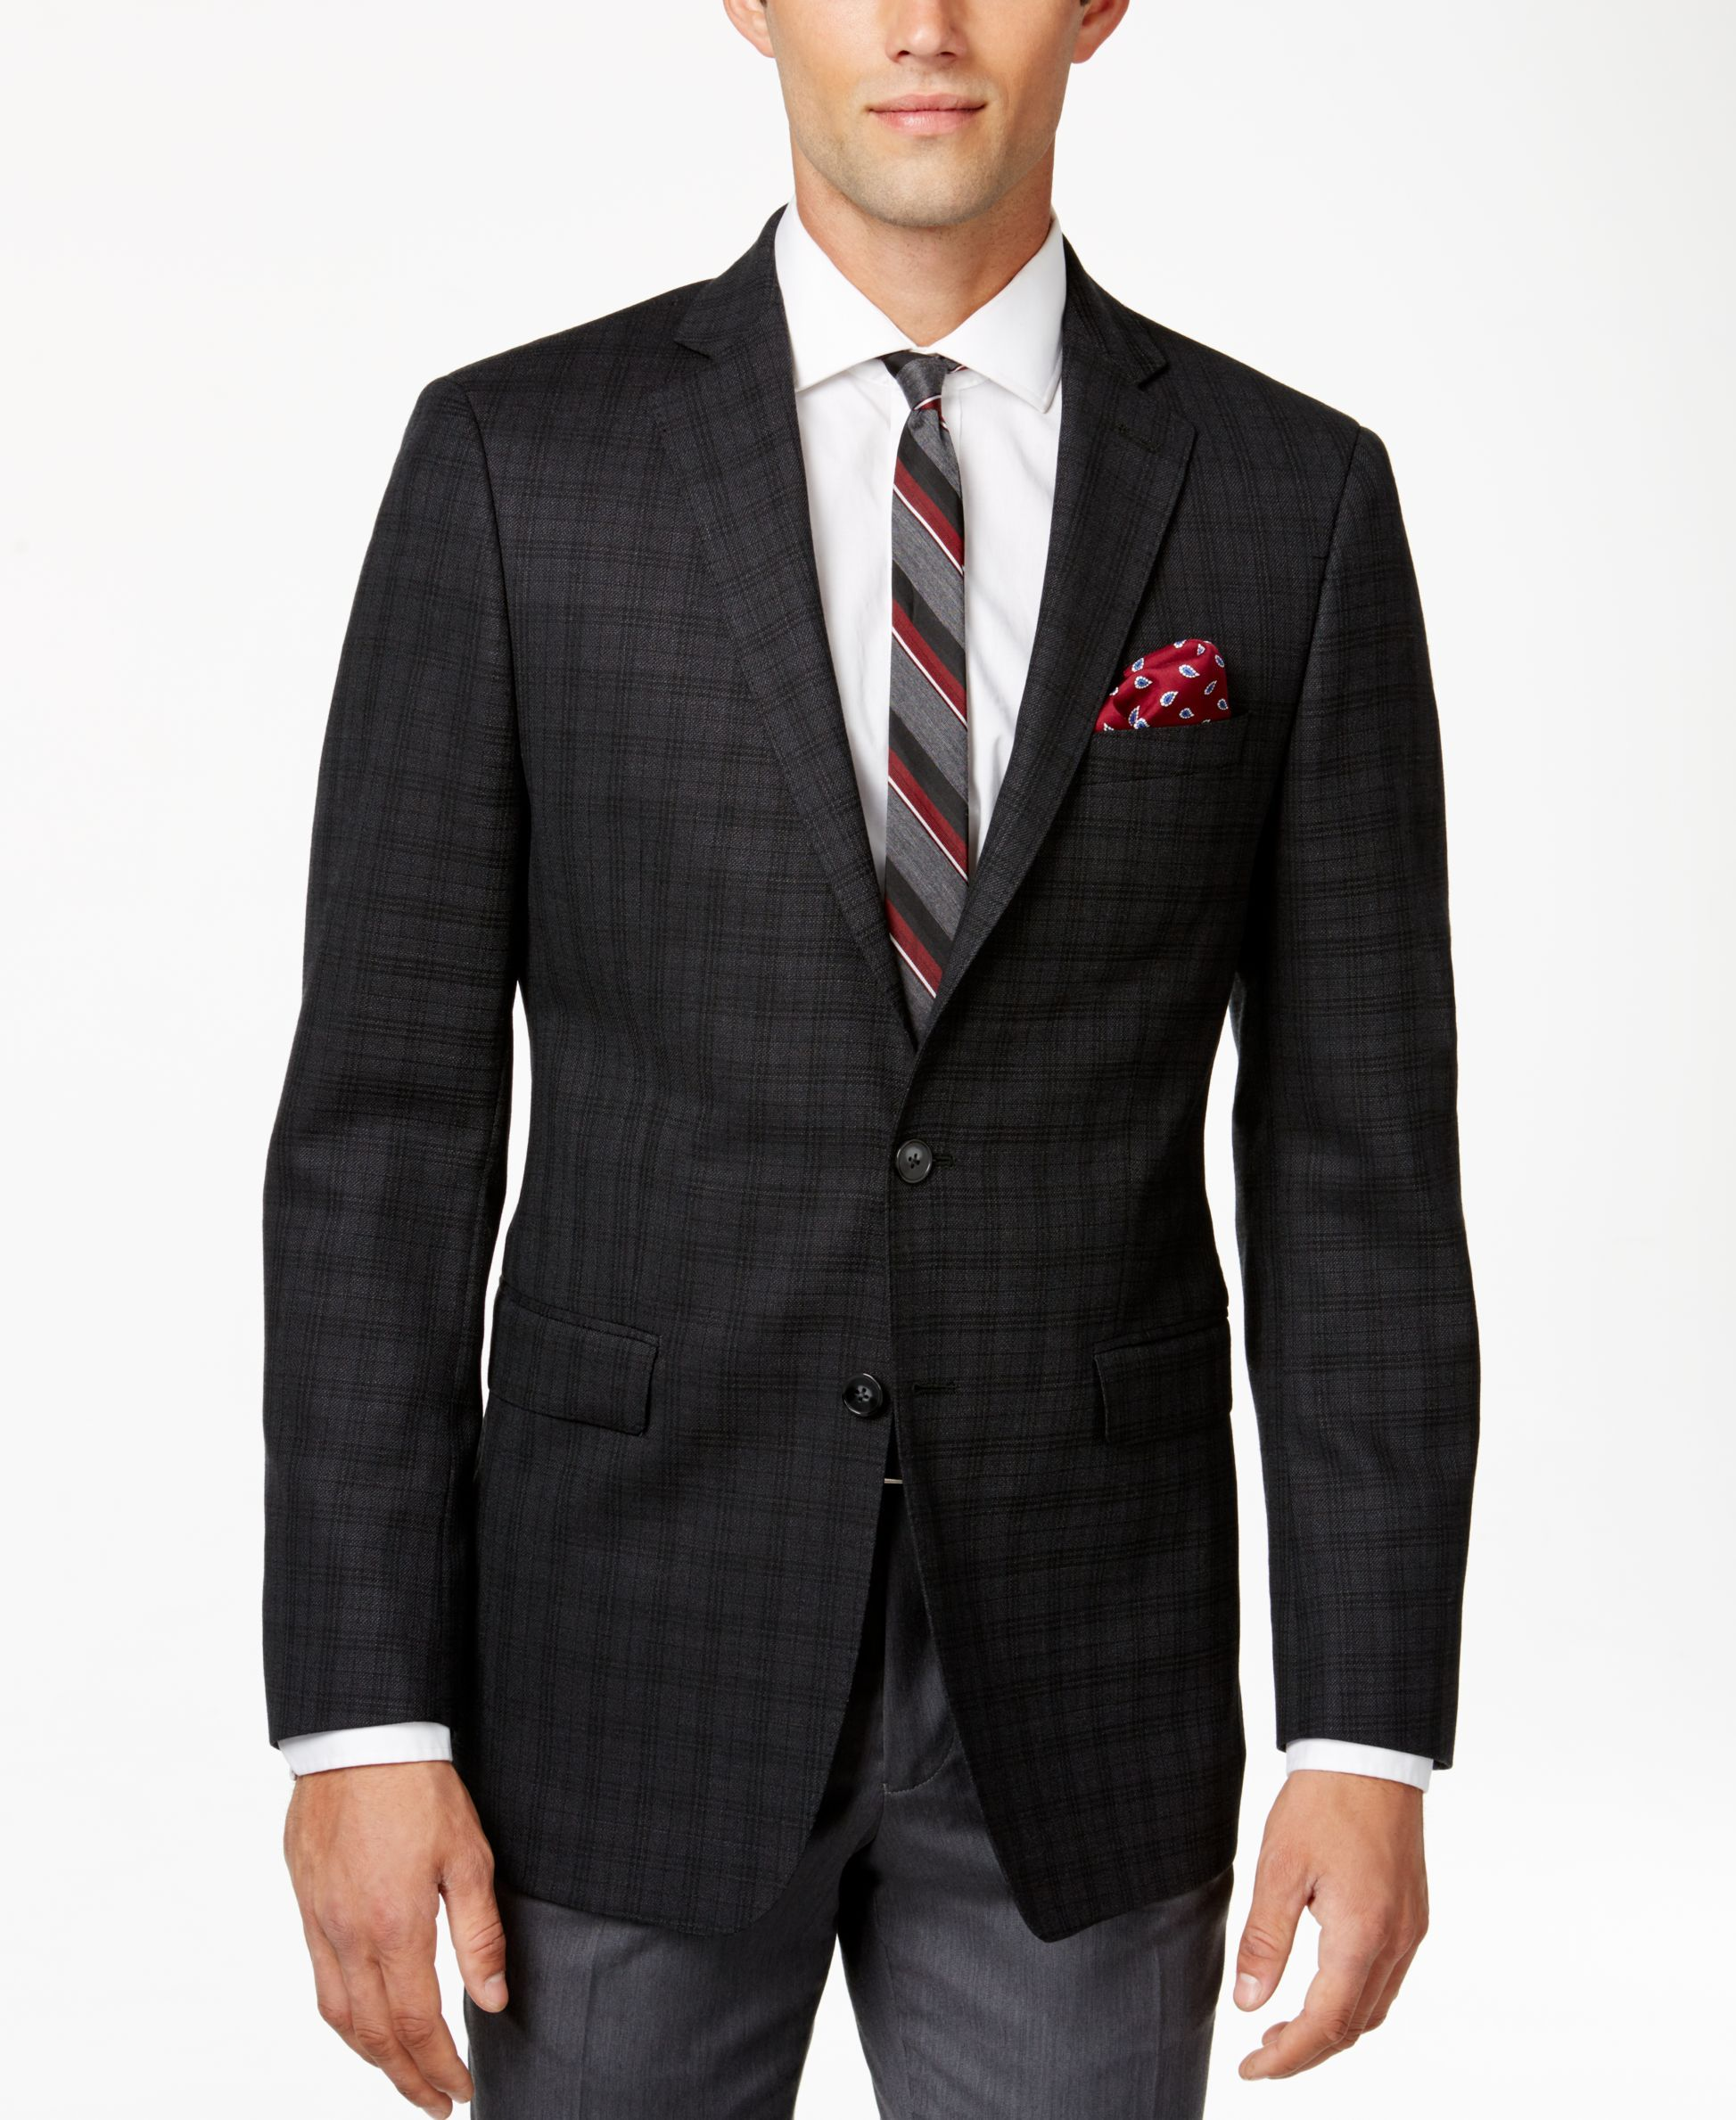 94a051f15be Calvin Klein Men s Charcoal Windowpane Slim-Fit Sport Coat